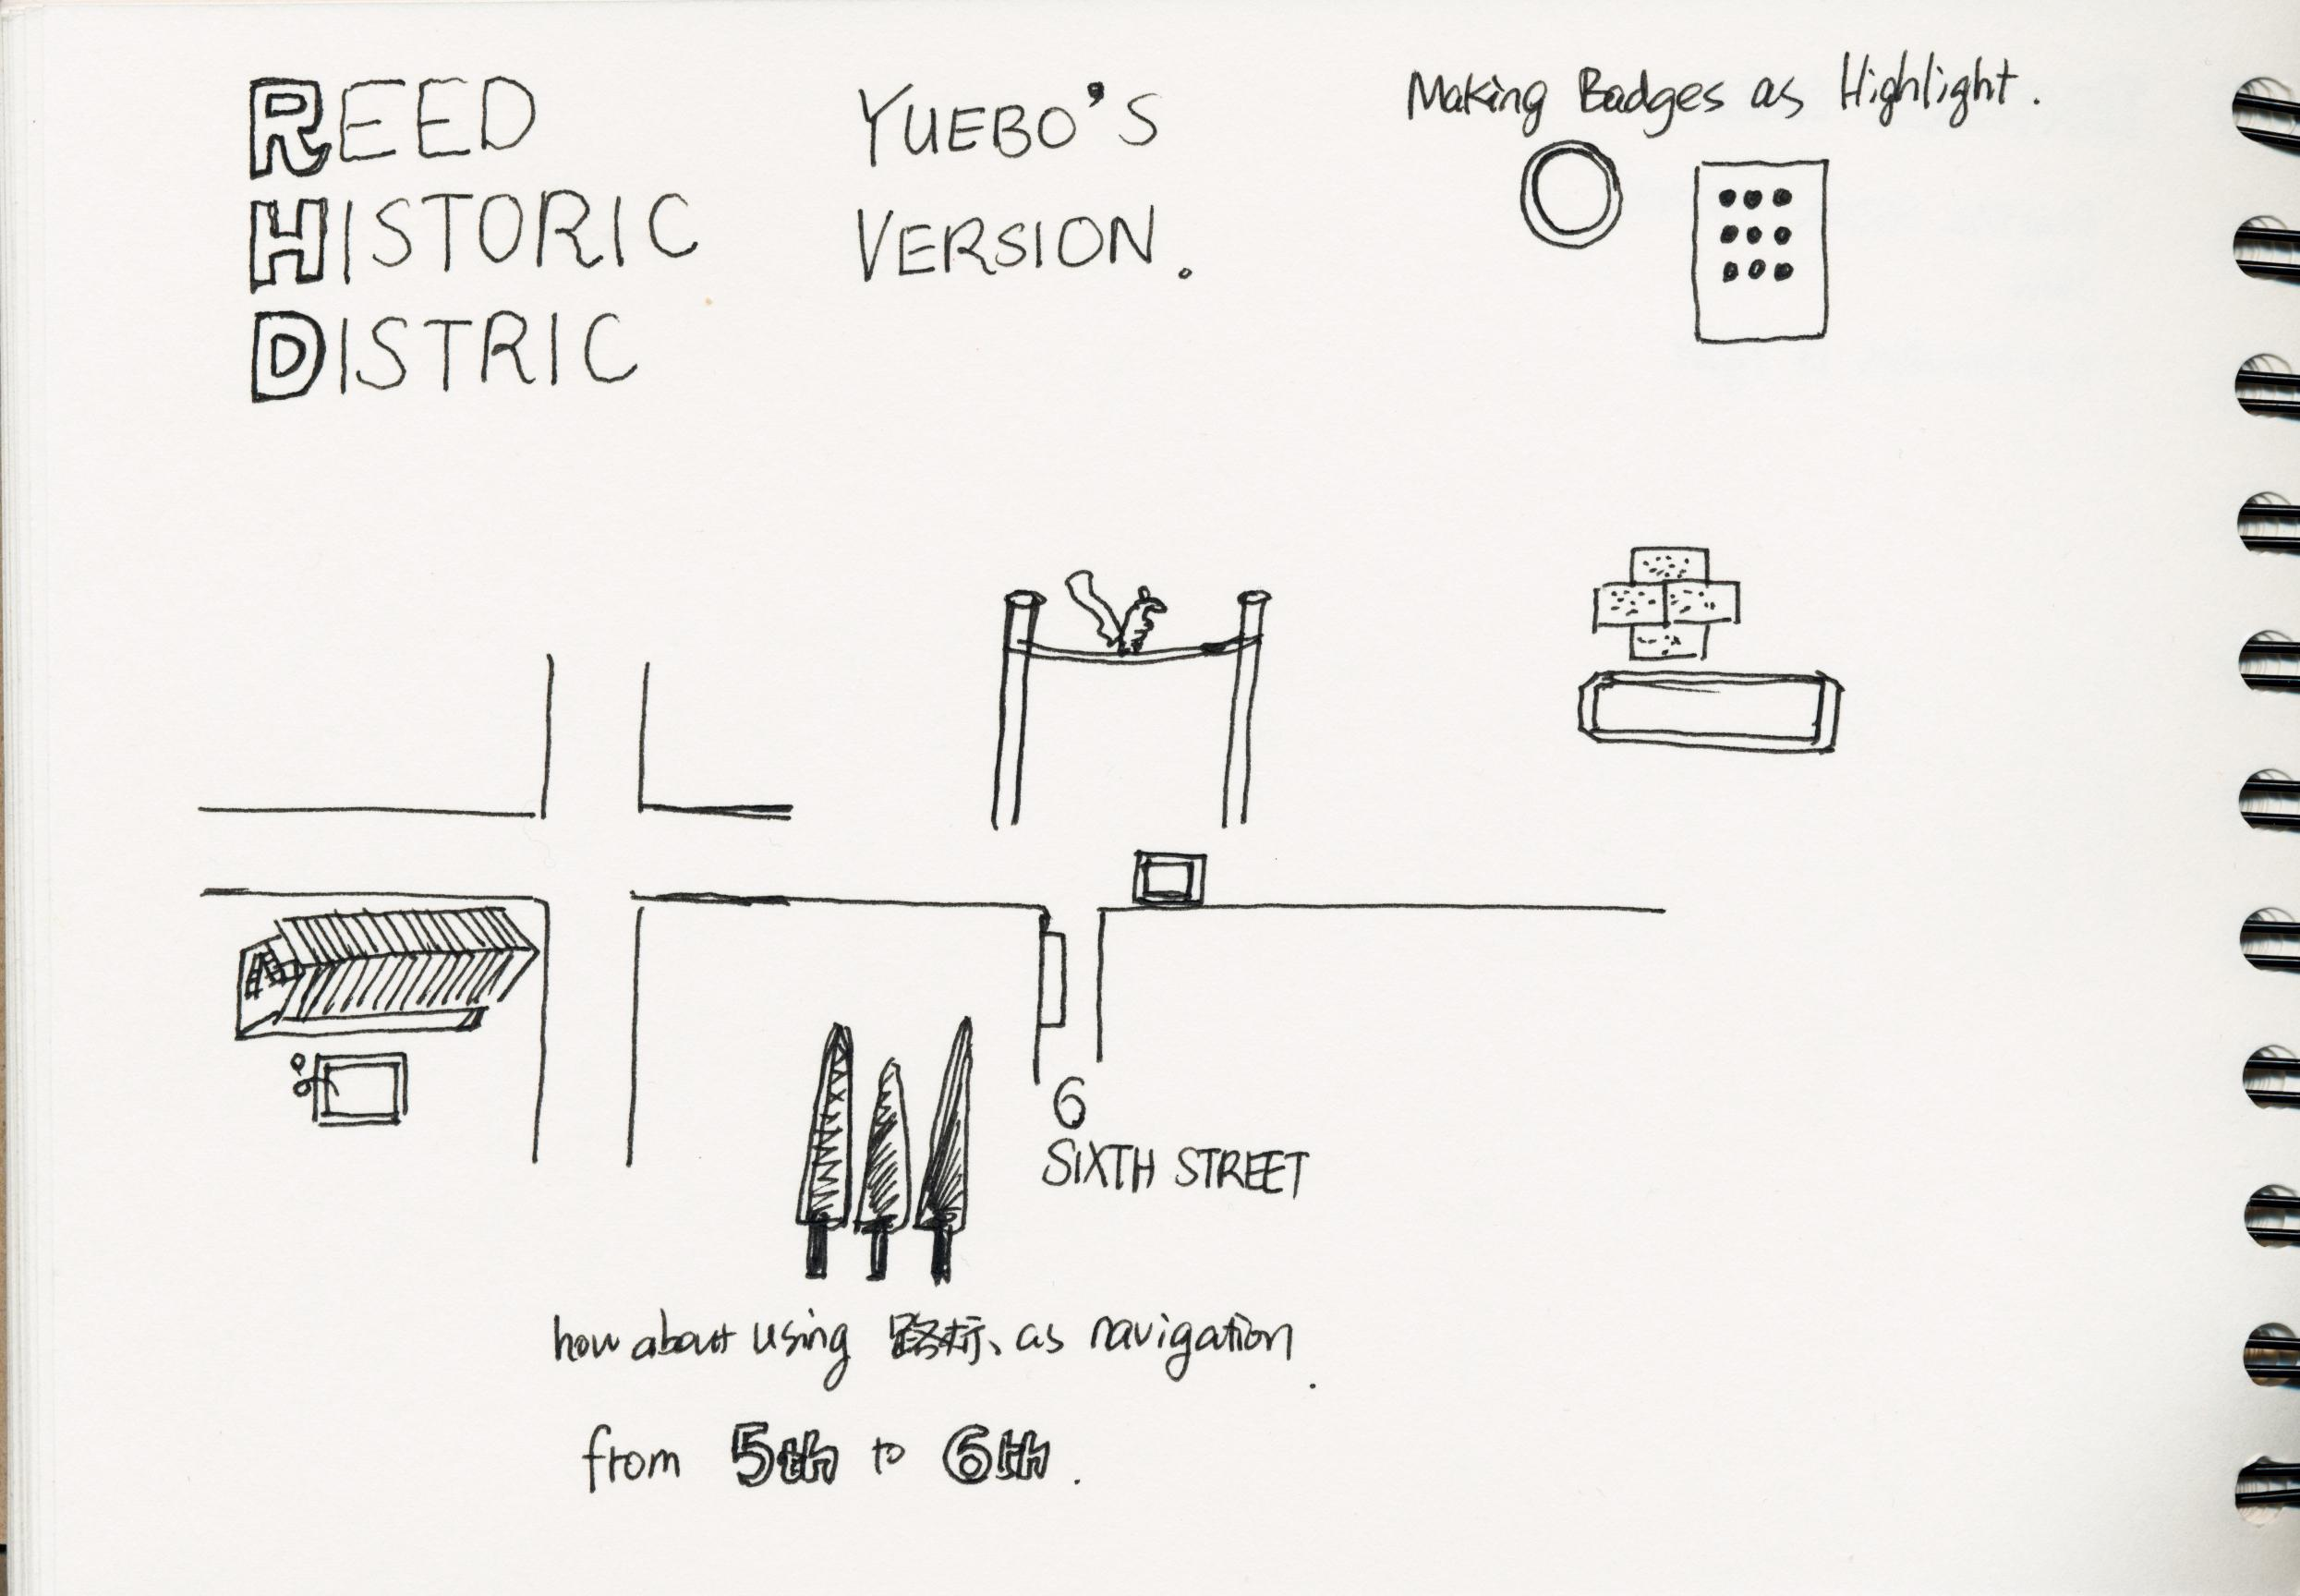 Map My Neighborhood -- Reed Historic District - image 2 - student project